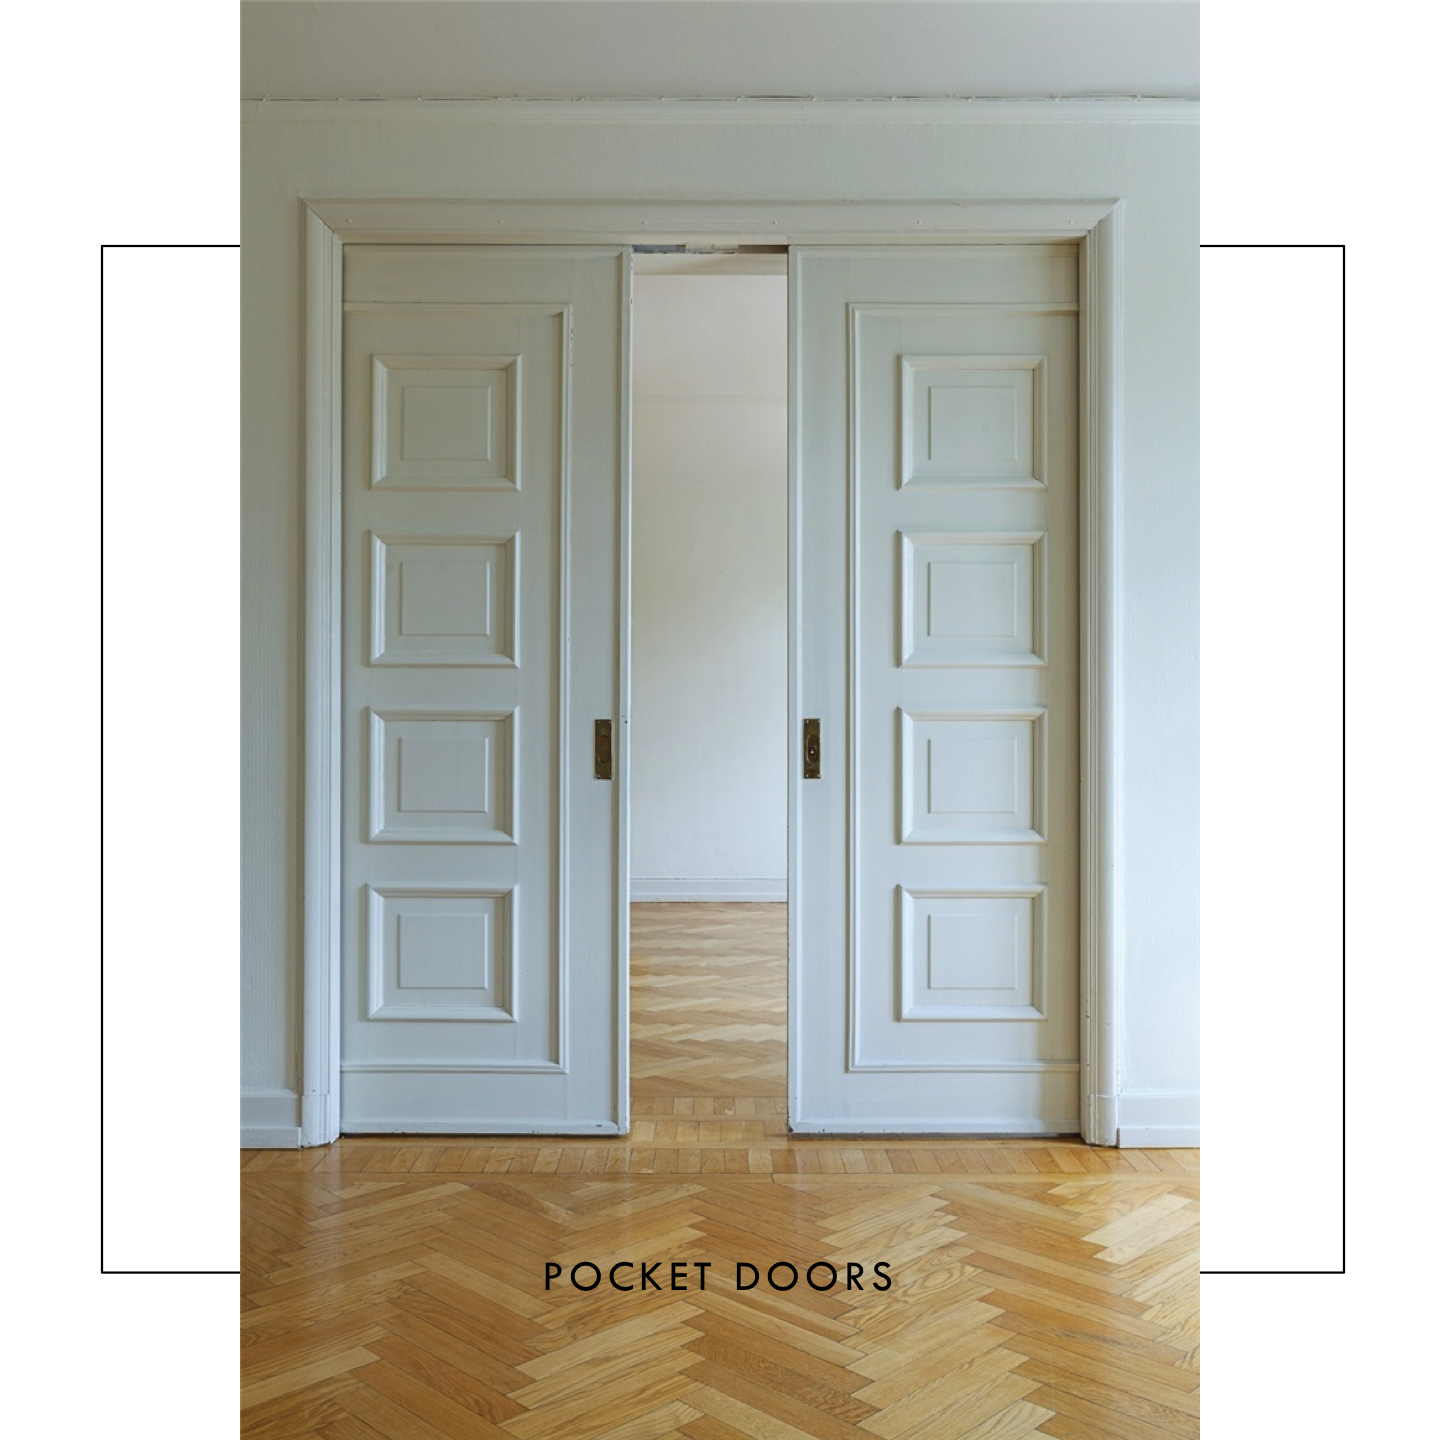 Door pocket pocket door frame dfpdi426 the home depot for Double pocket door home depot